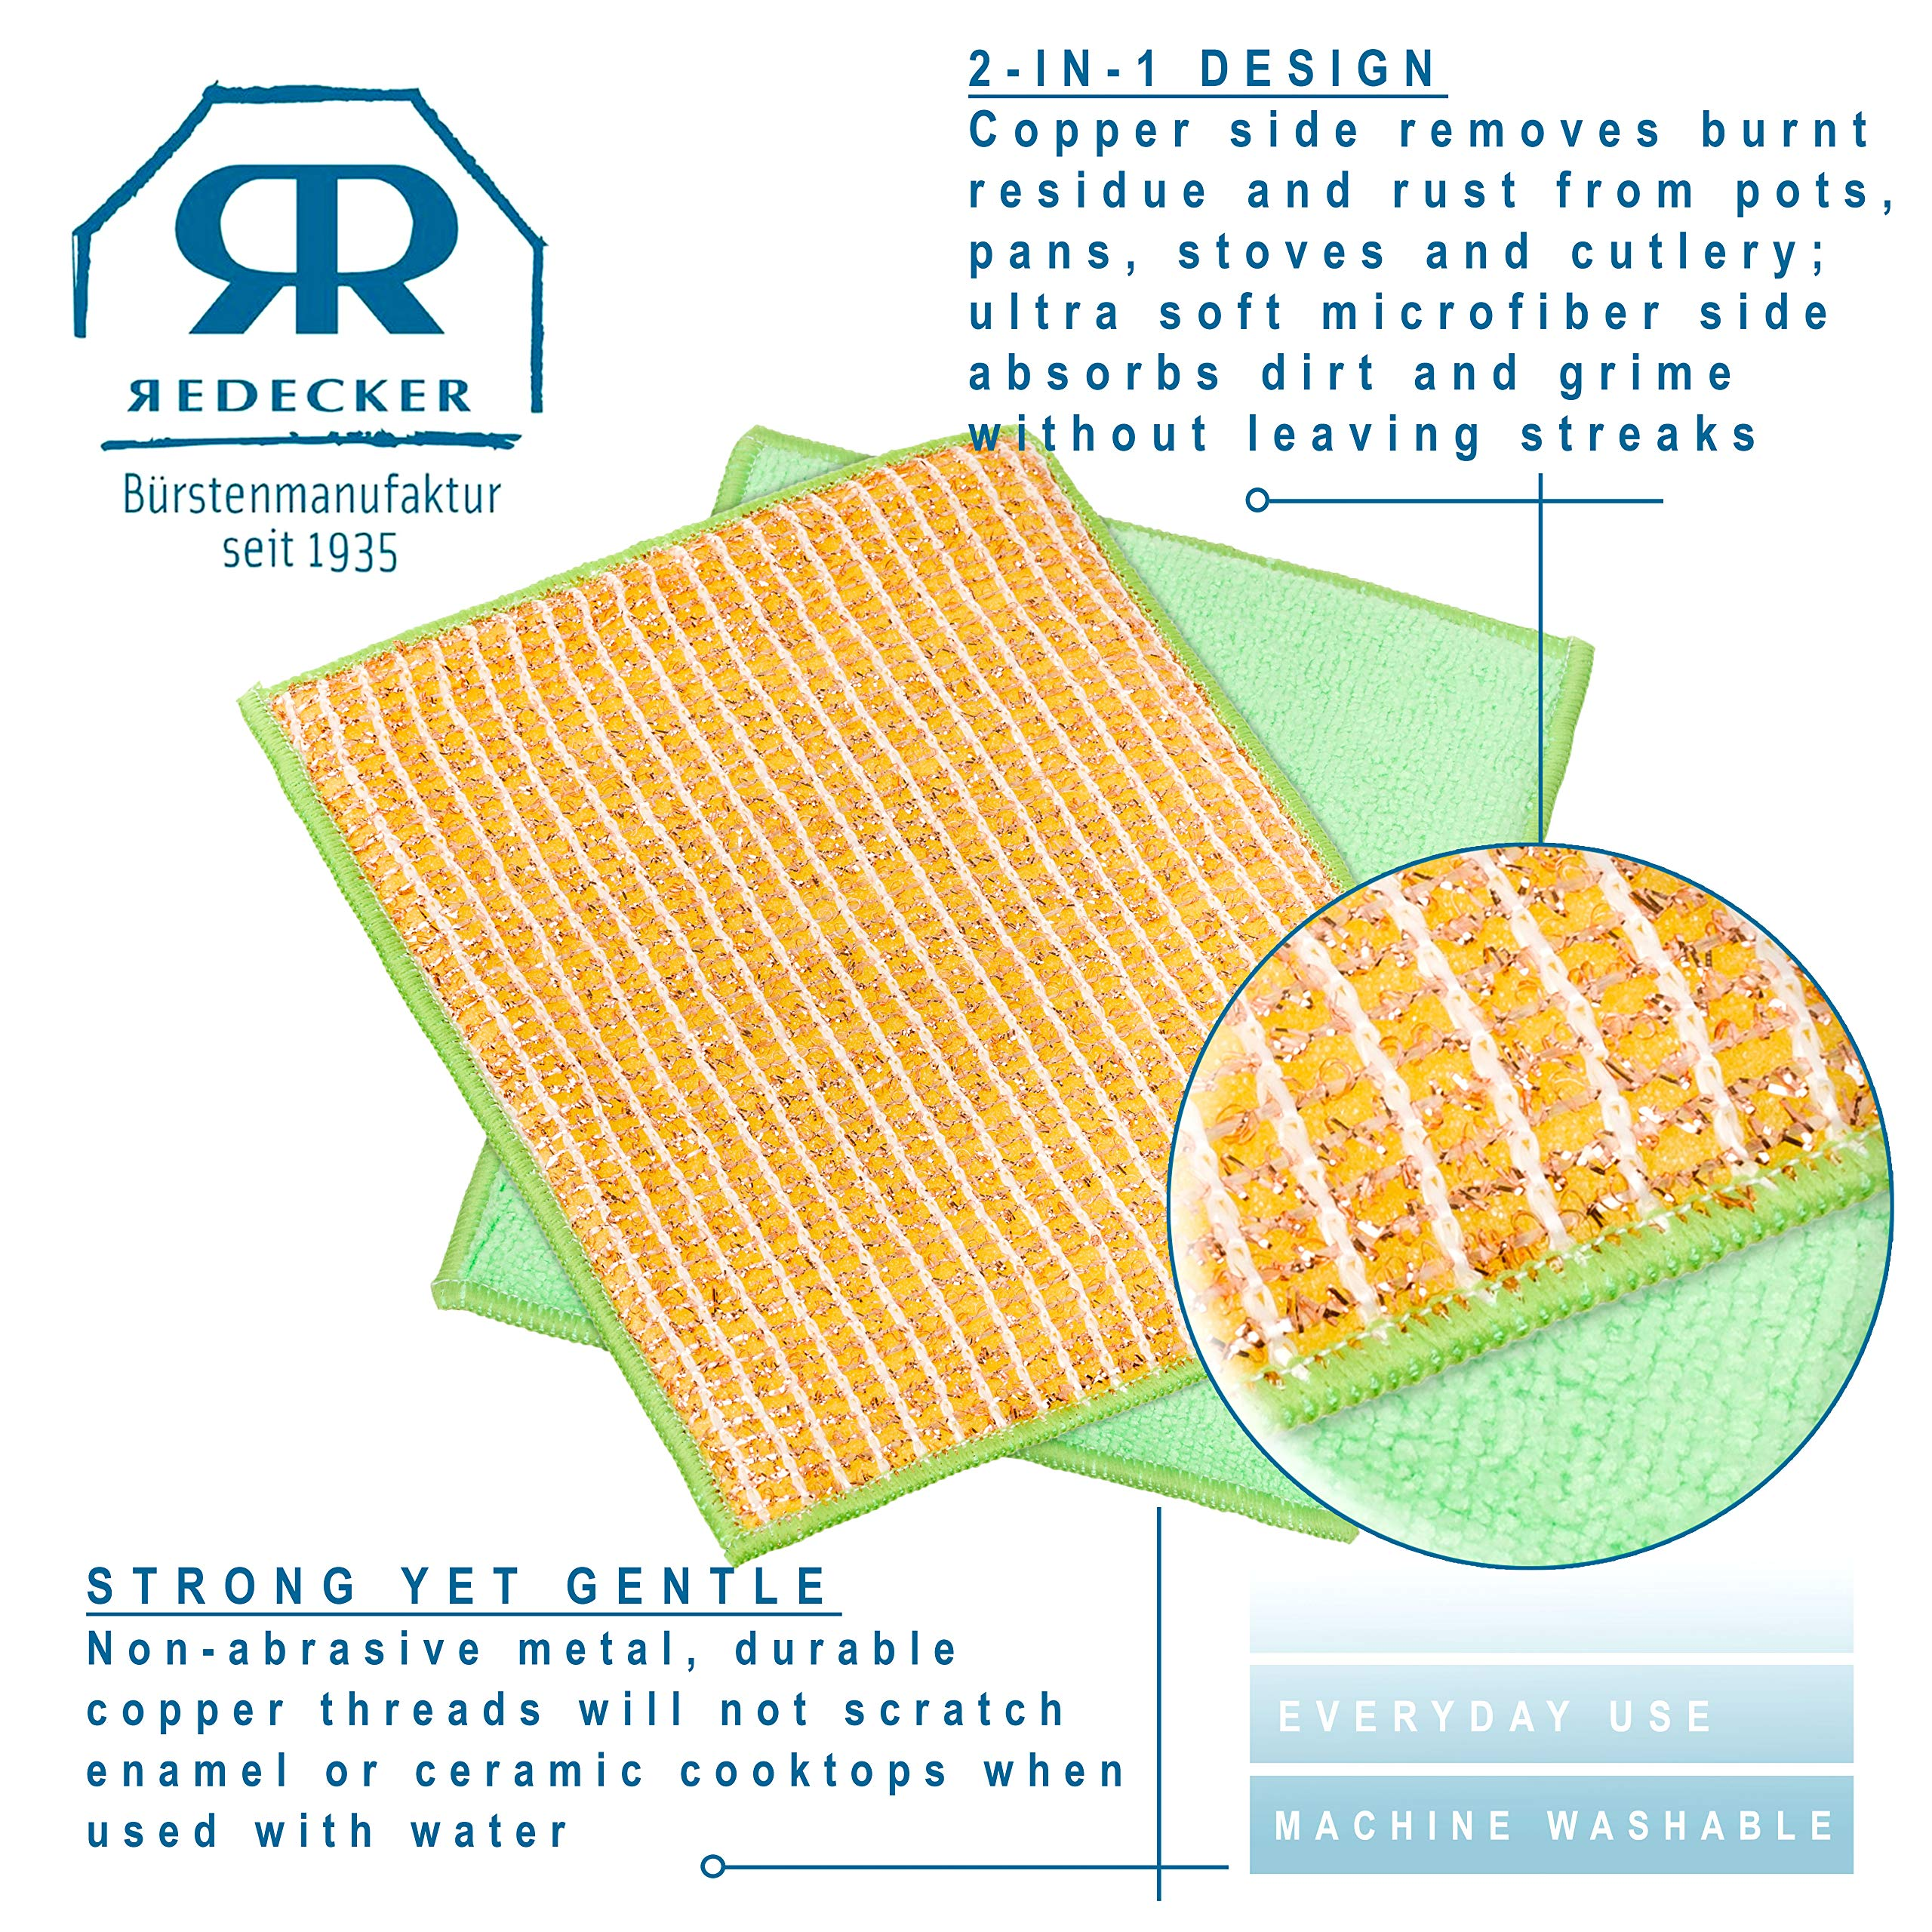 REDECKER Dual Sided Copper and Microfiber Cleaning Cloth, Set of 5, 7-3/4'' x 6'', Non-Abrasive Copper Effectively Scrubs, Absorbent Microfiber Wipes Surfaces Clean, Machine Washable, Made in Germany by REDECKER (Image #7)